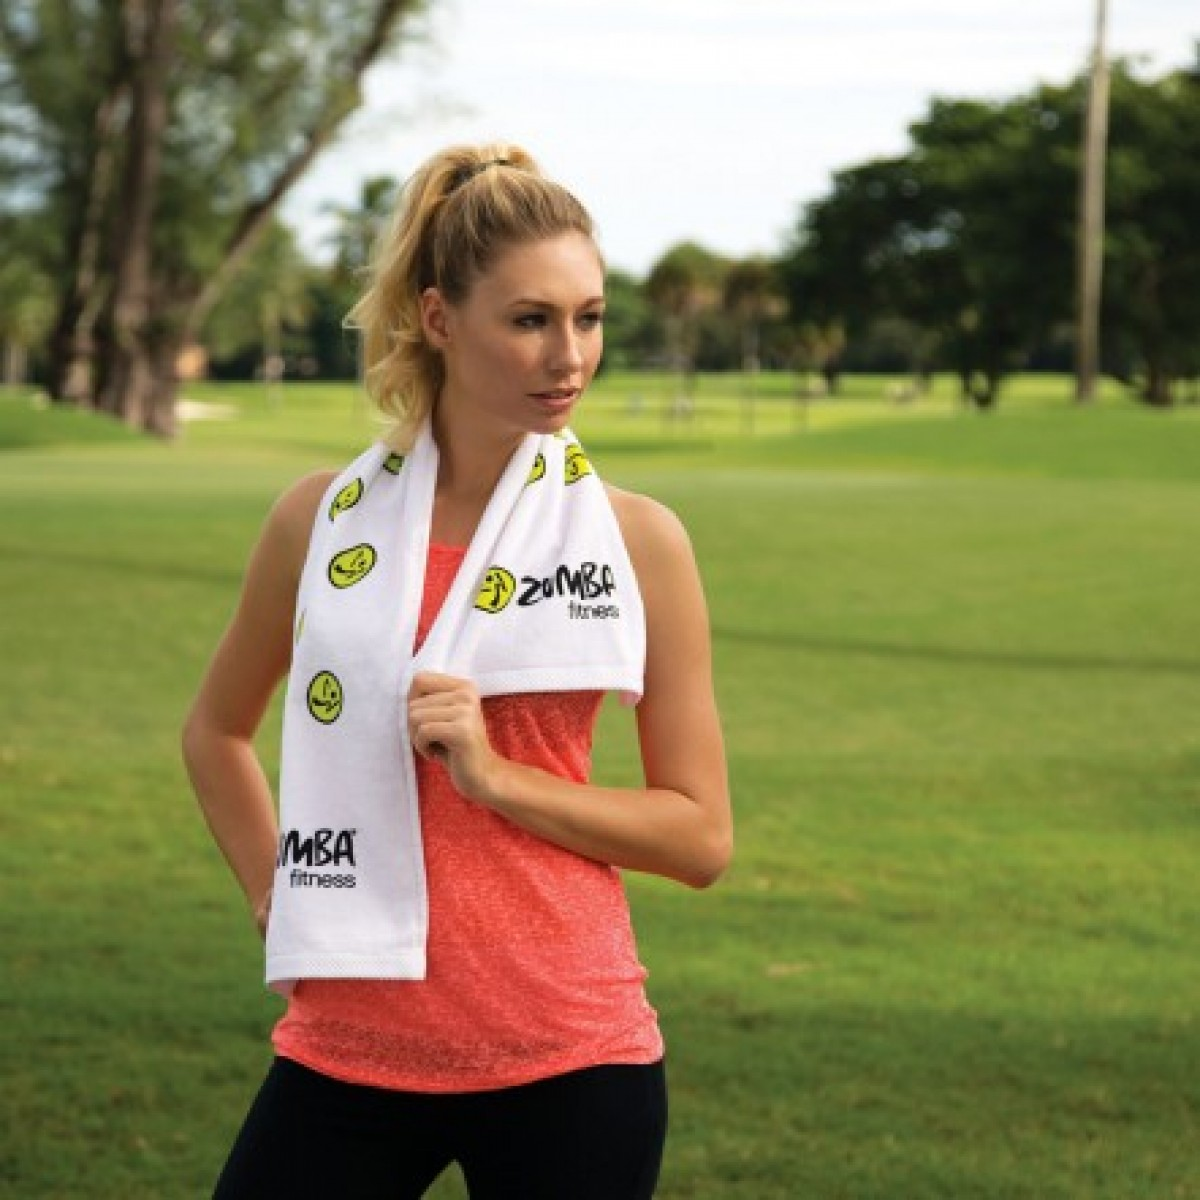 Swol Fitness Bamboo Towel: Wyndham Promo Store FITNESS TOWEL WITH CLEENFREEK